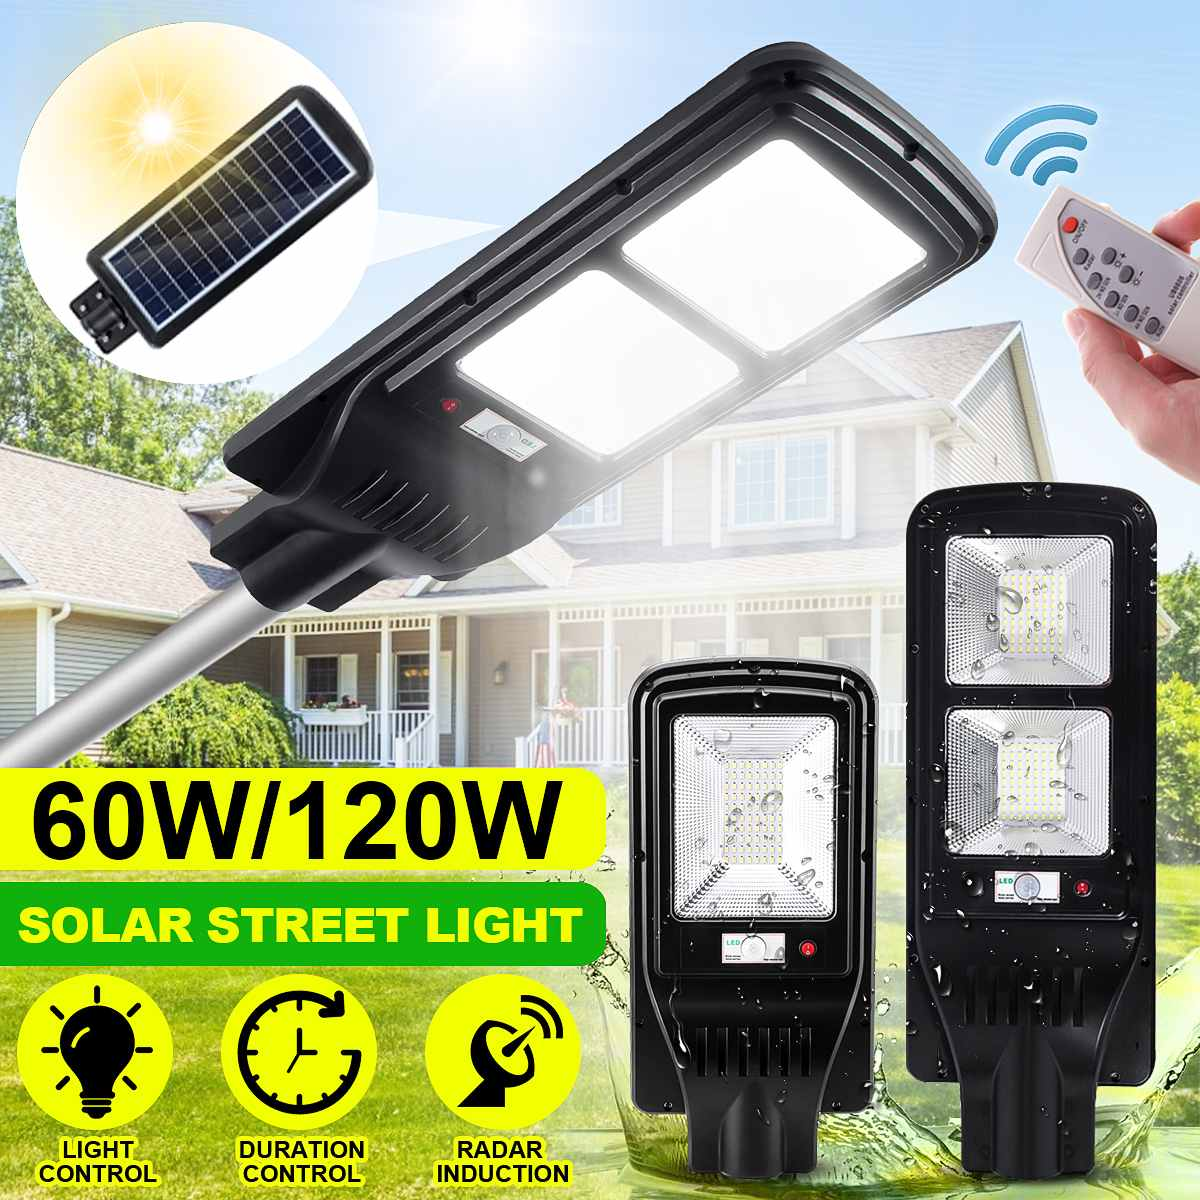 60W 120W LED Solar Street Lamp with Timer Remote Control PIR Radar Sensor Waterproof IP65 for Outdoor Garden and Villas Lighting